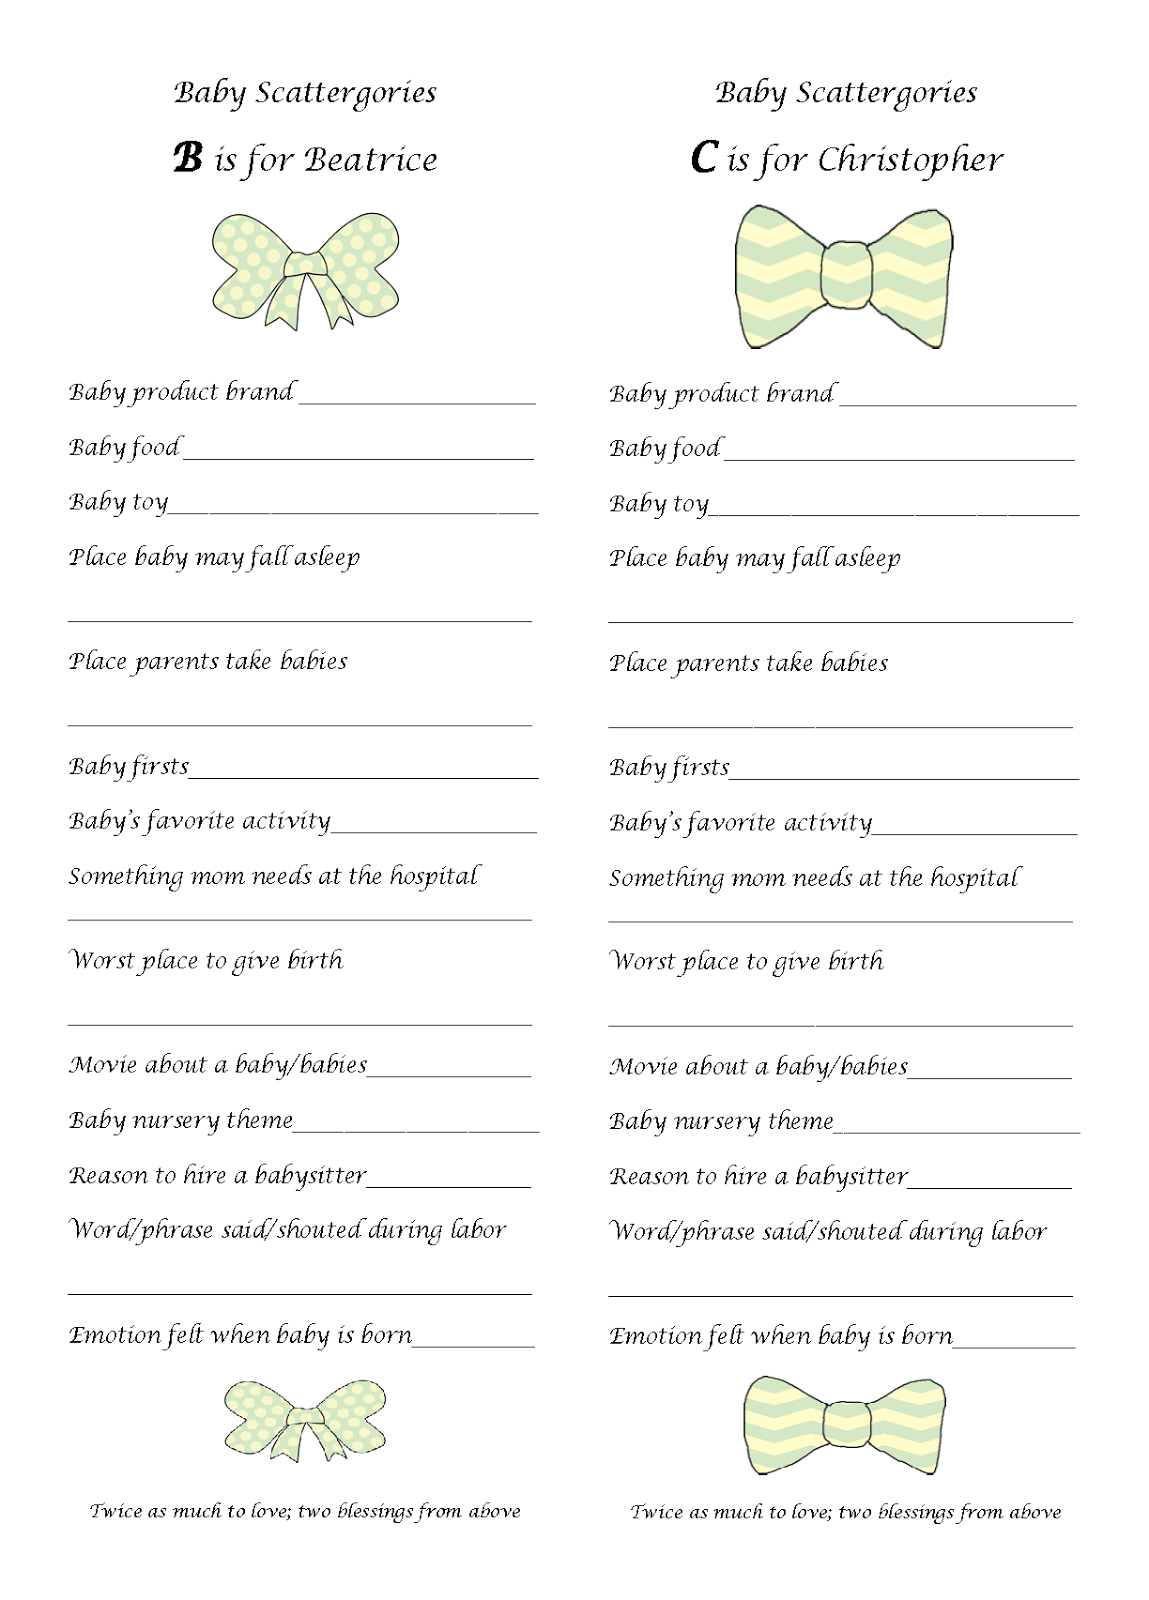 Bows Bow Ties Shower The Games Baby Shower Virtual Baby